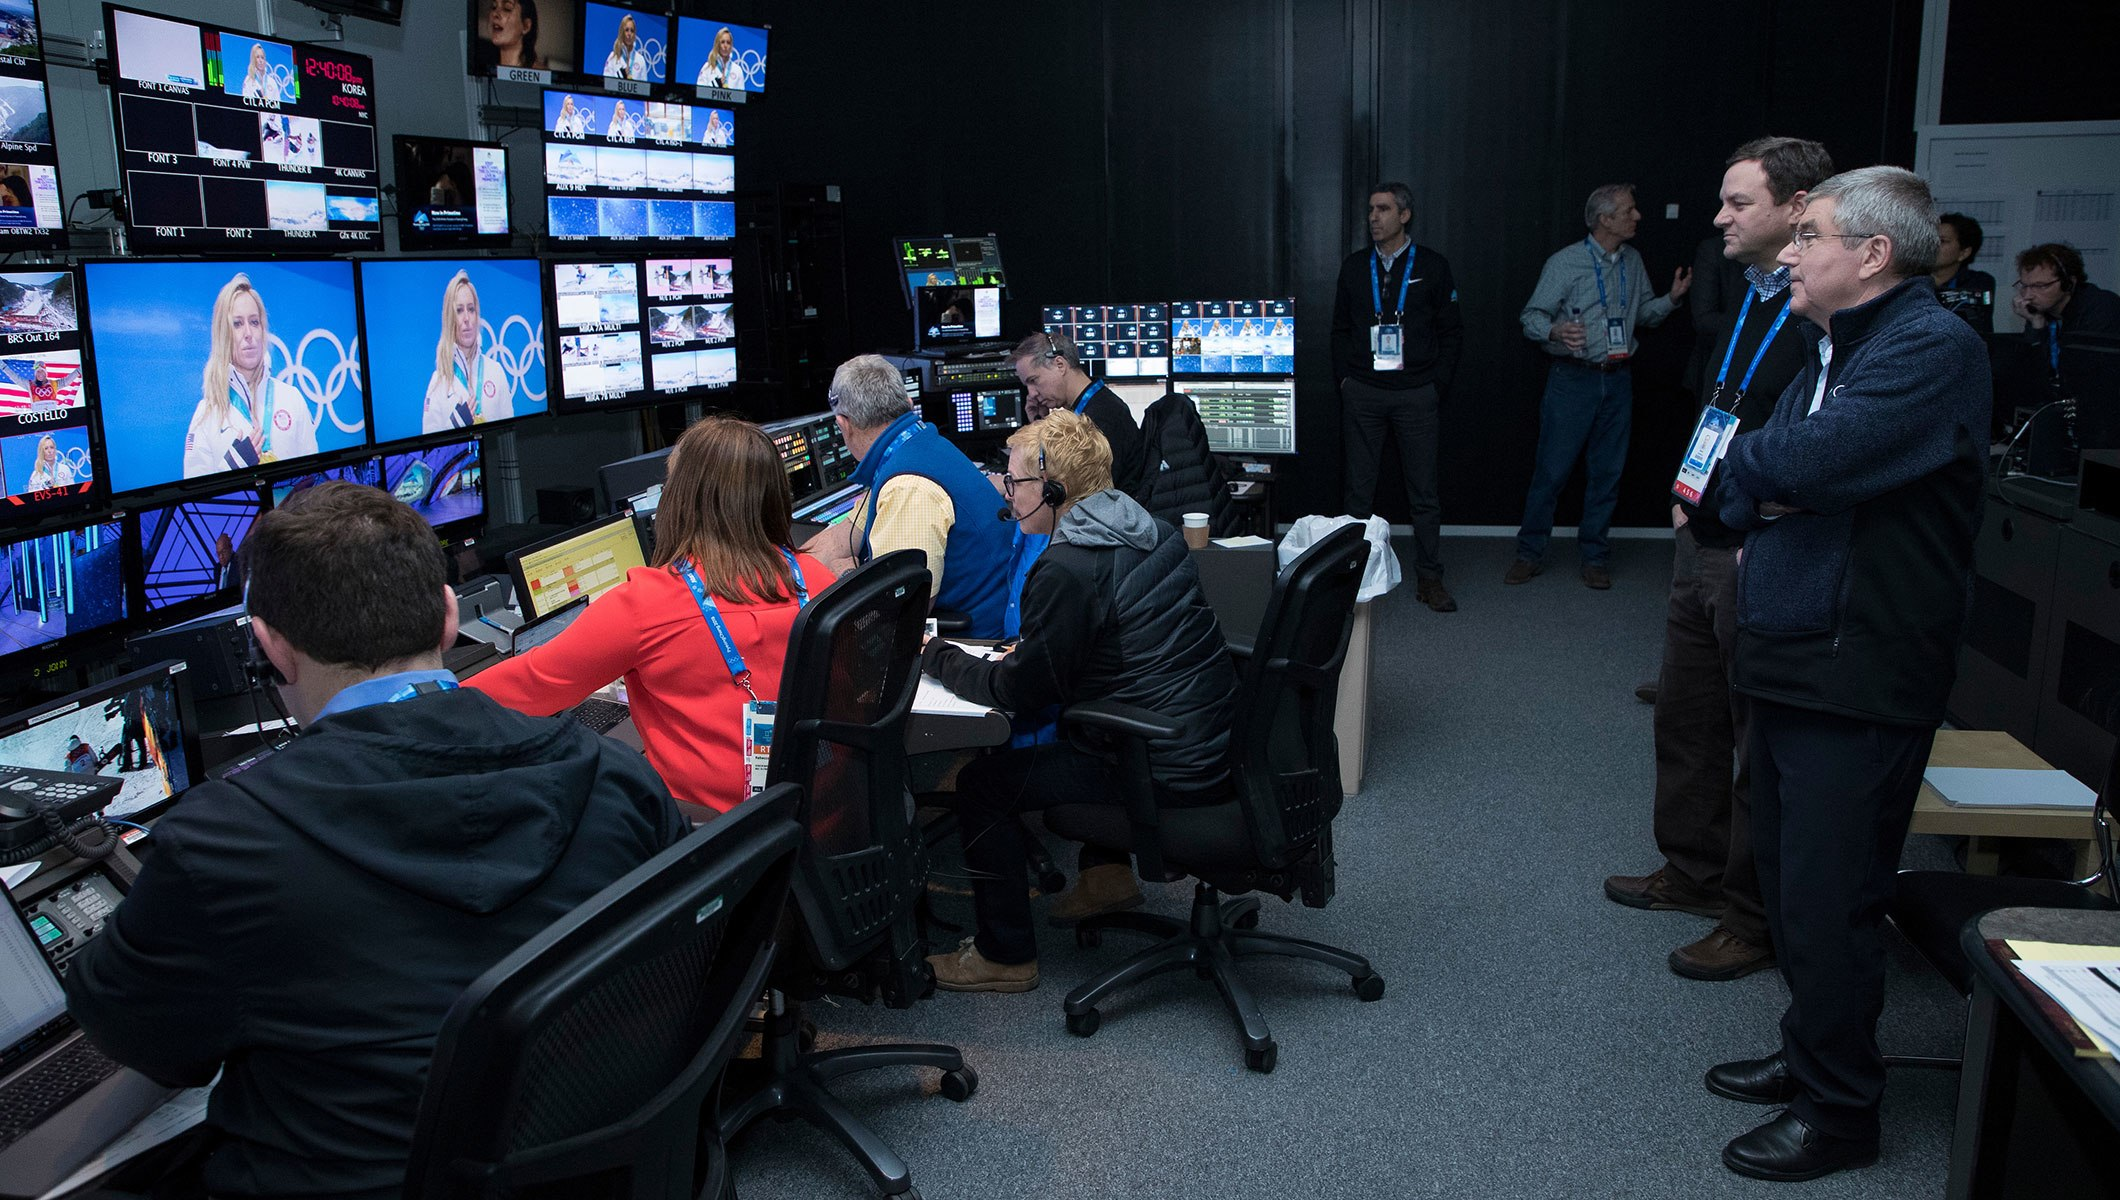 BEHIND-THE-SCENES LOOK AT THE WORLD OF OLYMPIC BROADCASTING